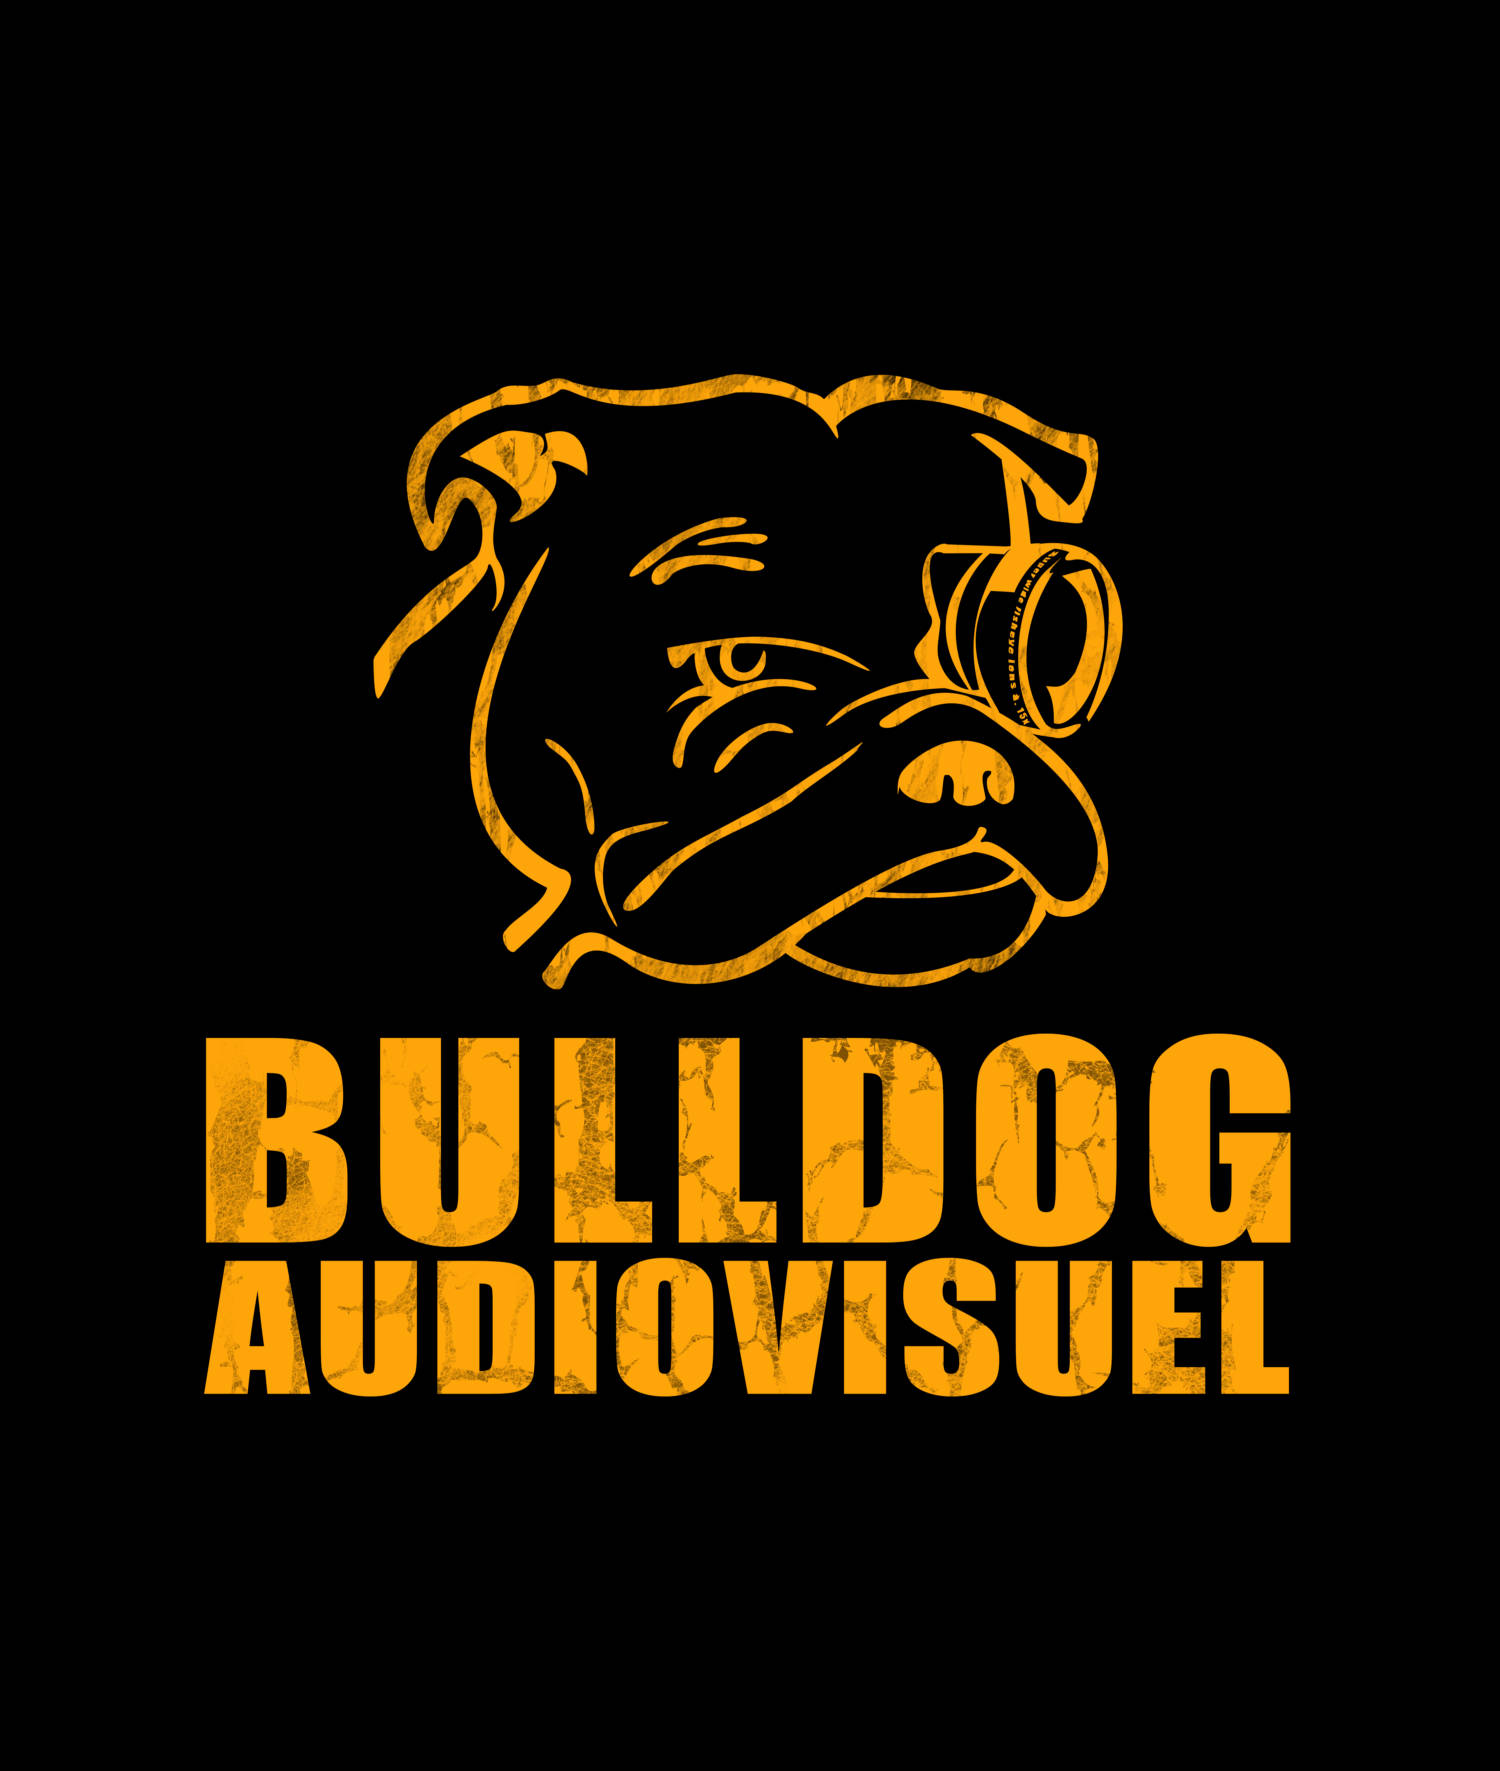 logo-bulldog-2017-full